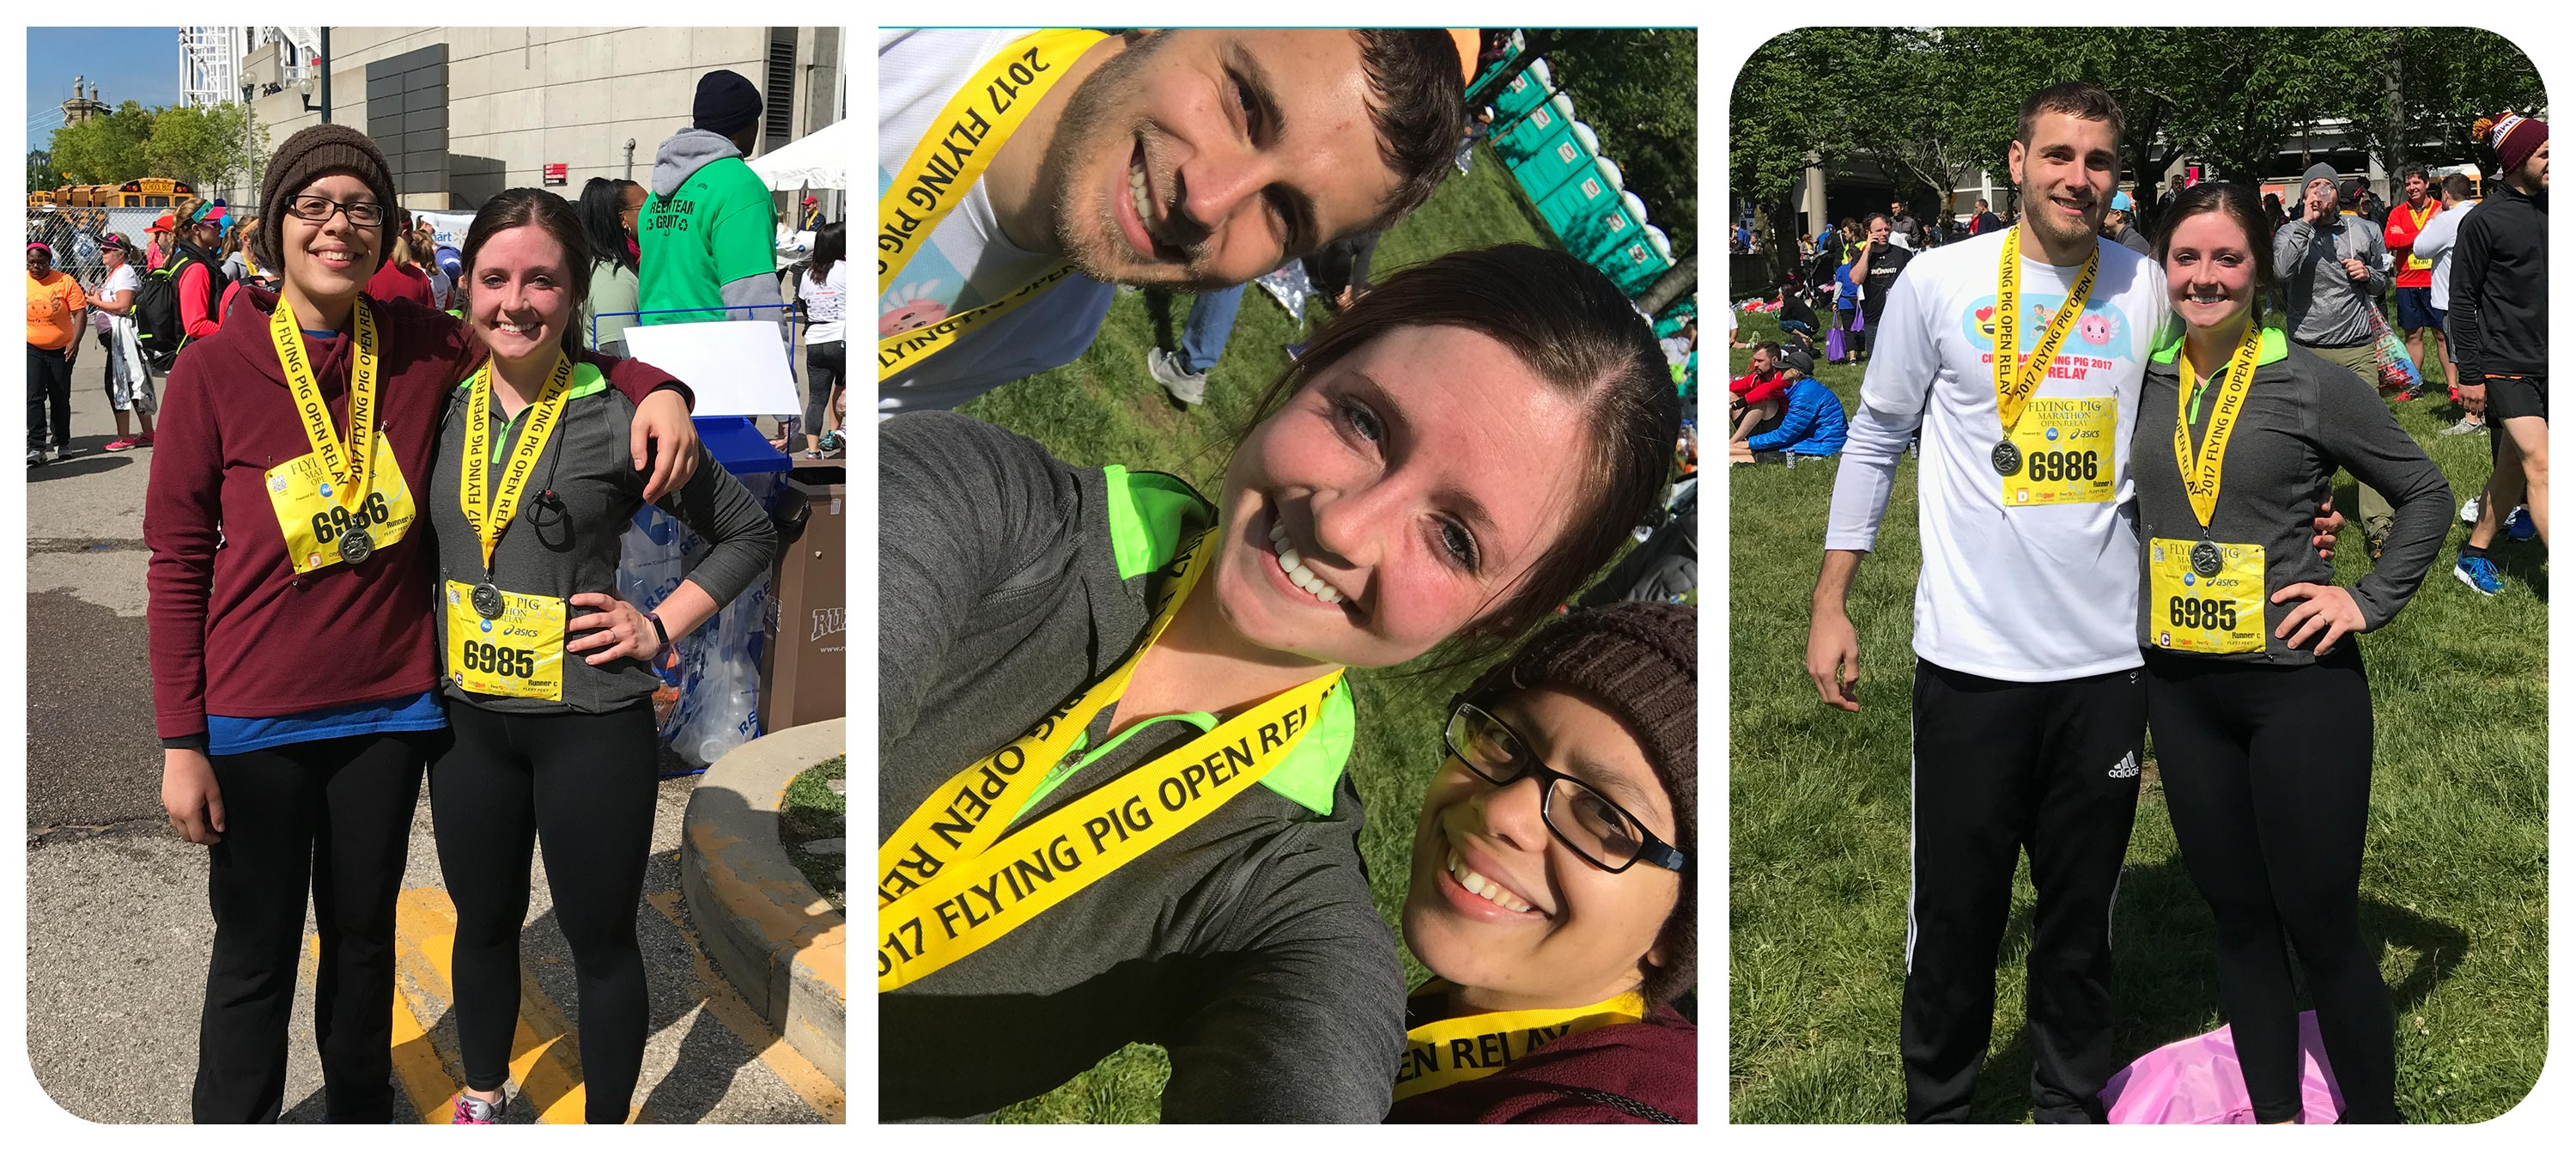 Photos of our co-op, Kristin, and other Schaefer employees at the 2017 Flying Pig Relay Race.